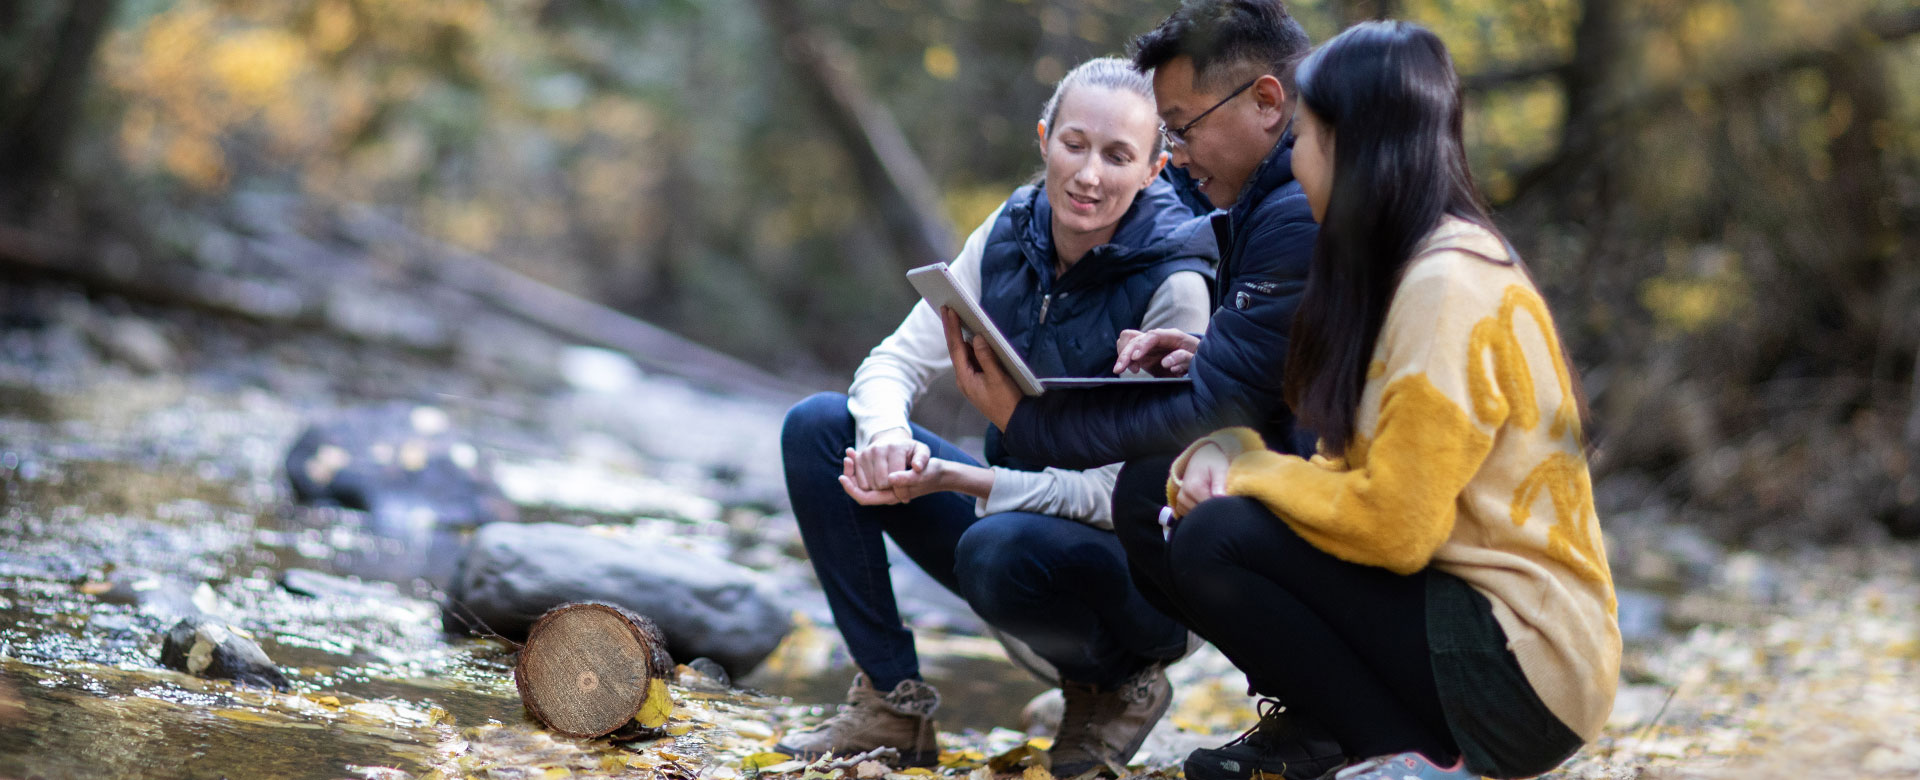 Three students looking at a laptop in the forest